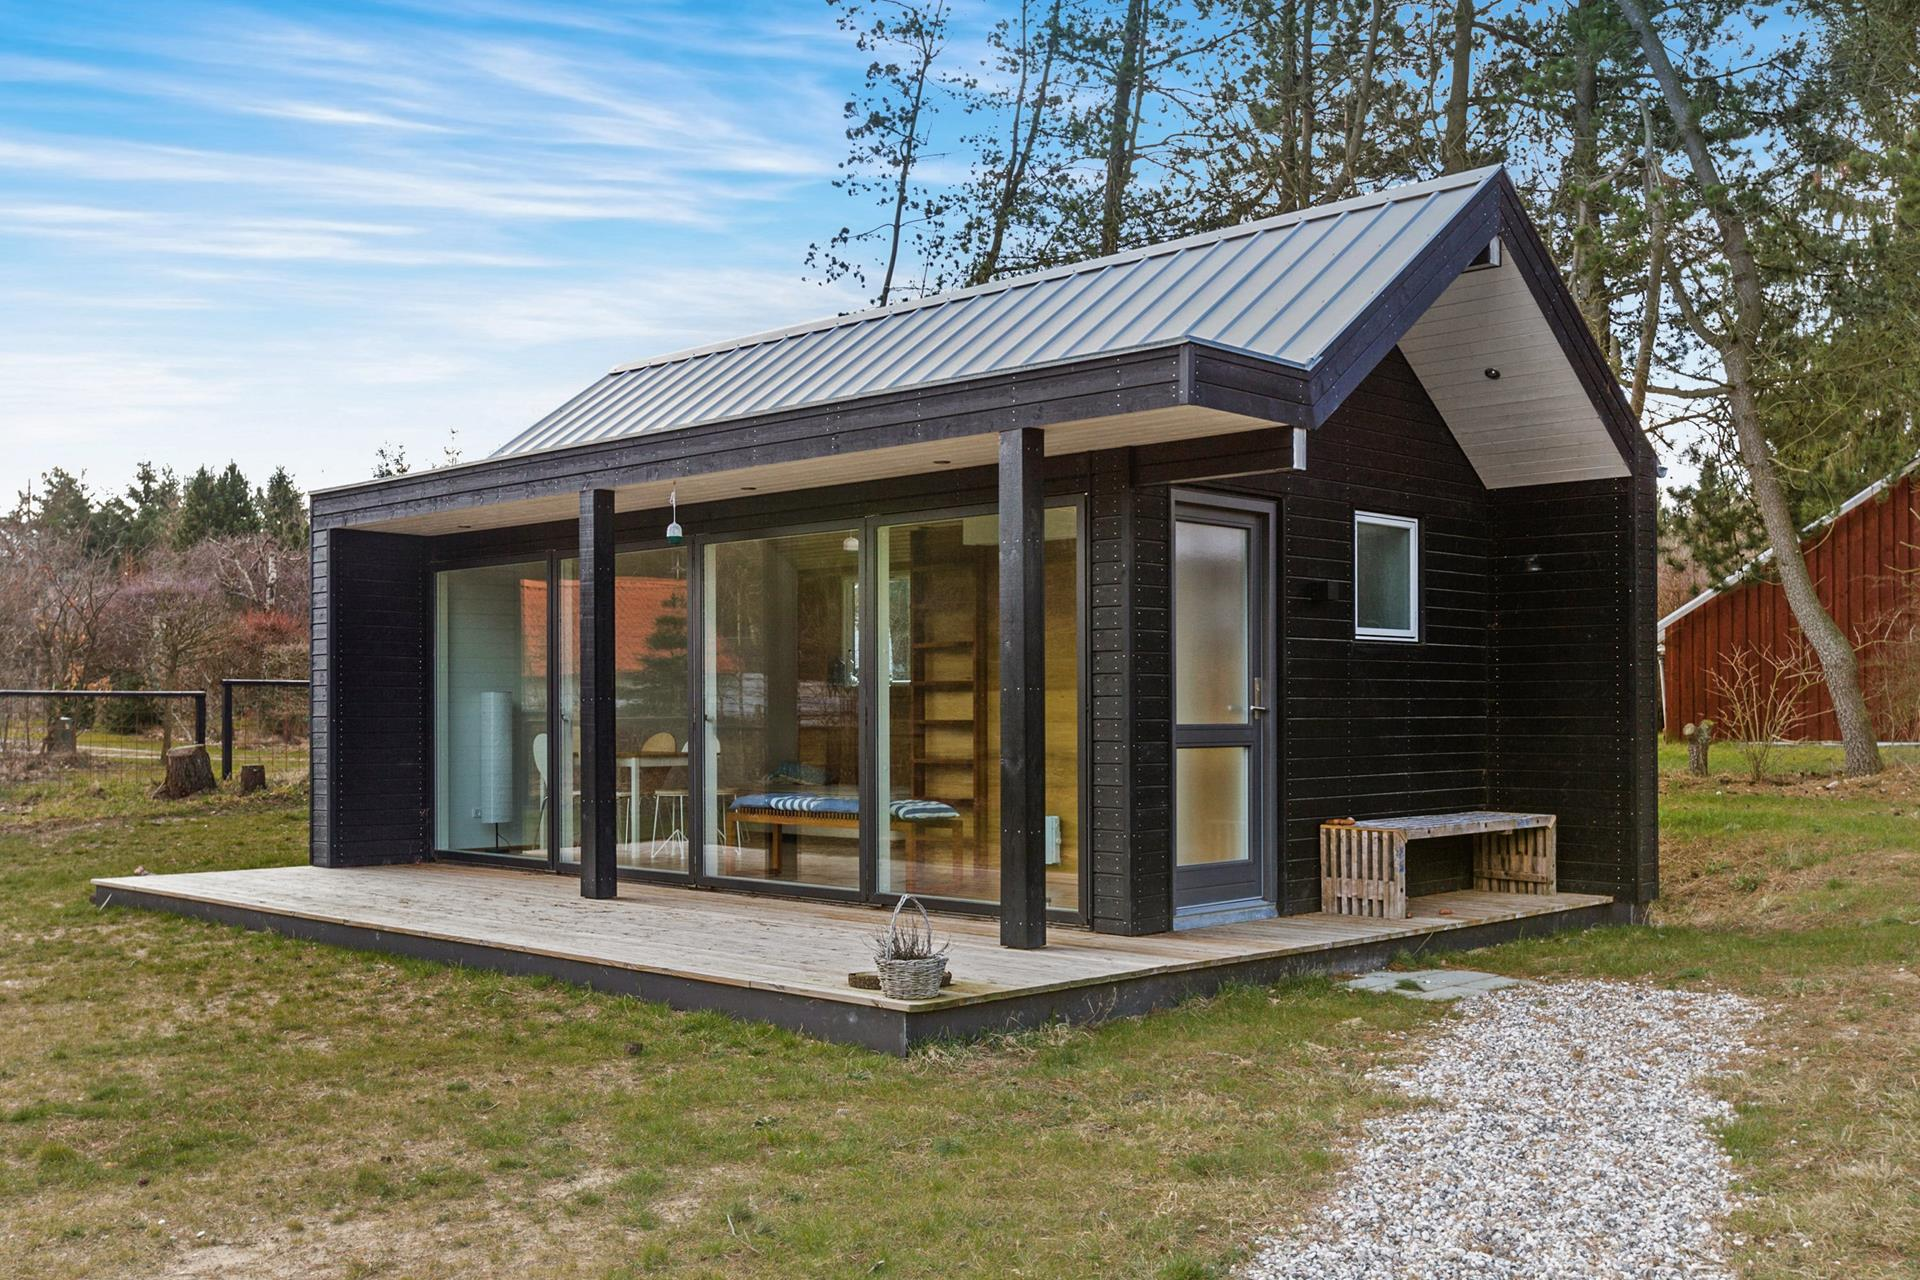 Delightful This Scandinavian Modern Tiny House In Denmark Has A 258 Sq Ft Studio Floor  Plan With